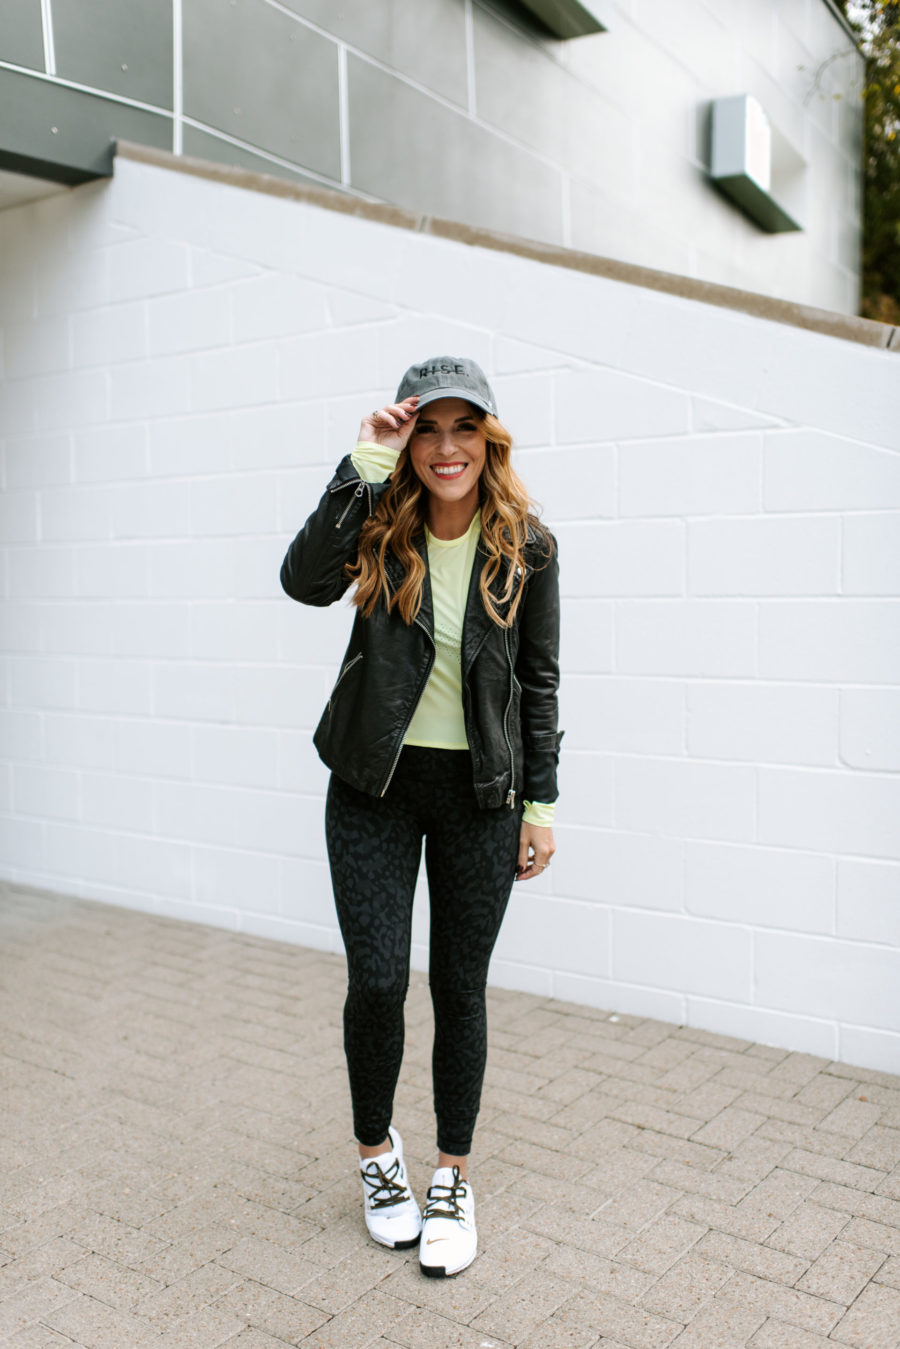 Rachel Hollis style, Rachel Hollis black leather jacket, Rachel Hollis style guide, how to wear a black leather jacket, black leather jacket style guide, fashion tips, fashion advice